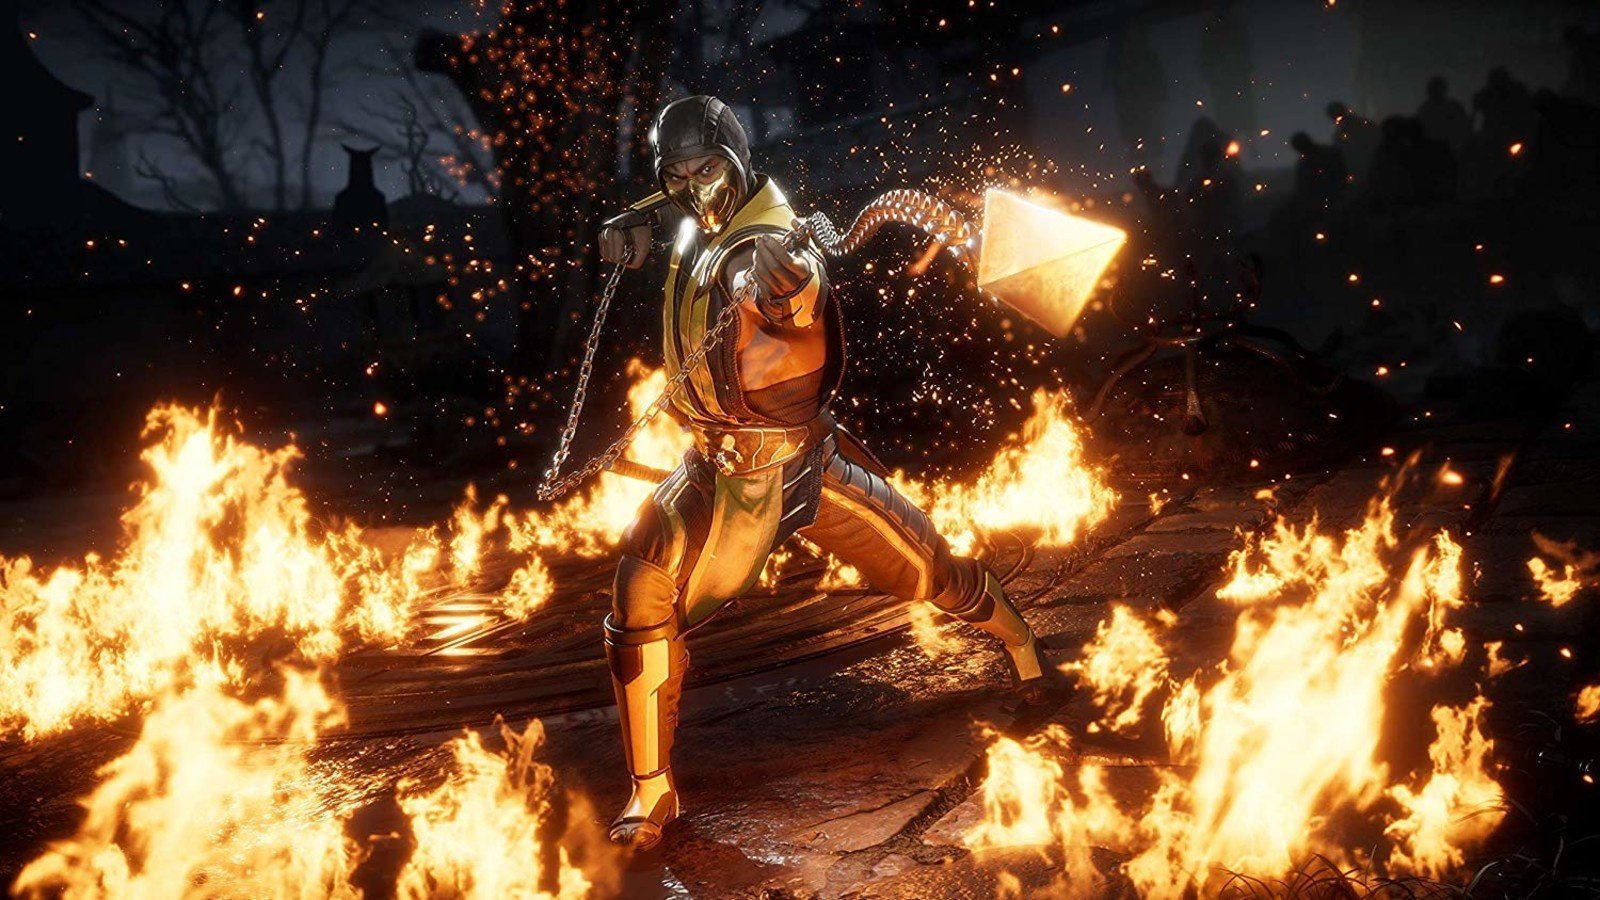 Mortal Kombat 11 Aftermath How To Perform All Fatalities Push